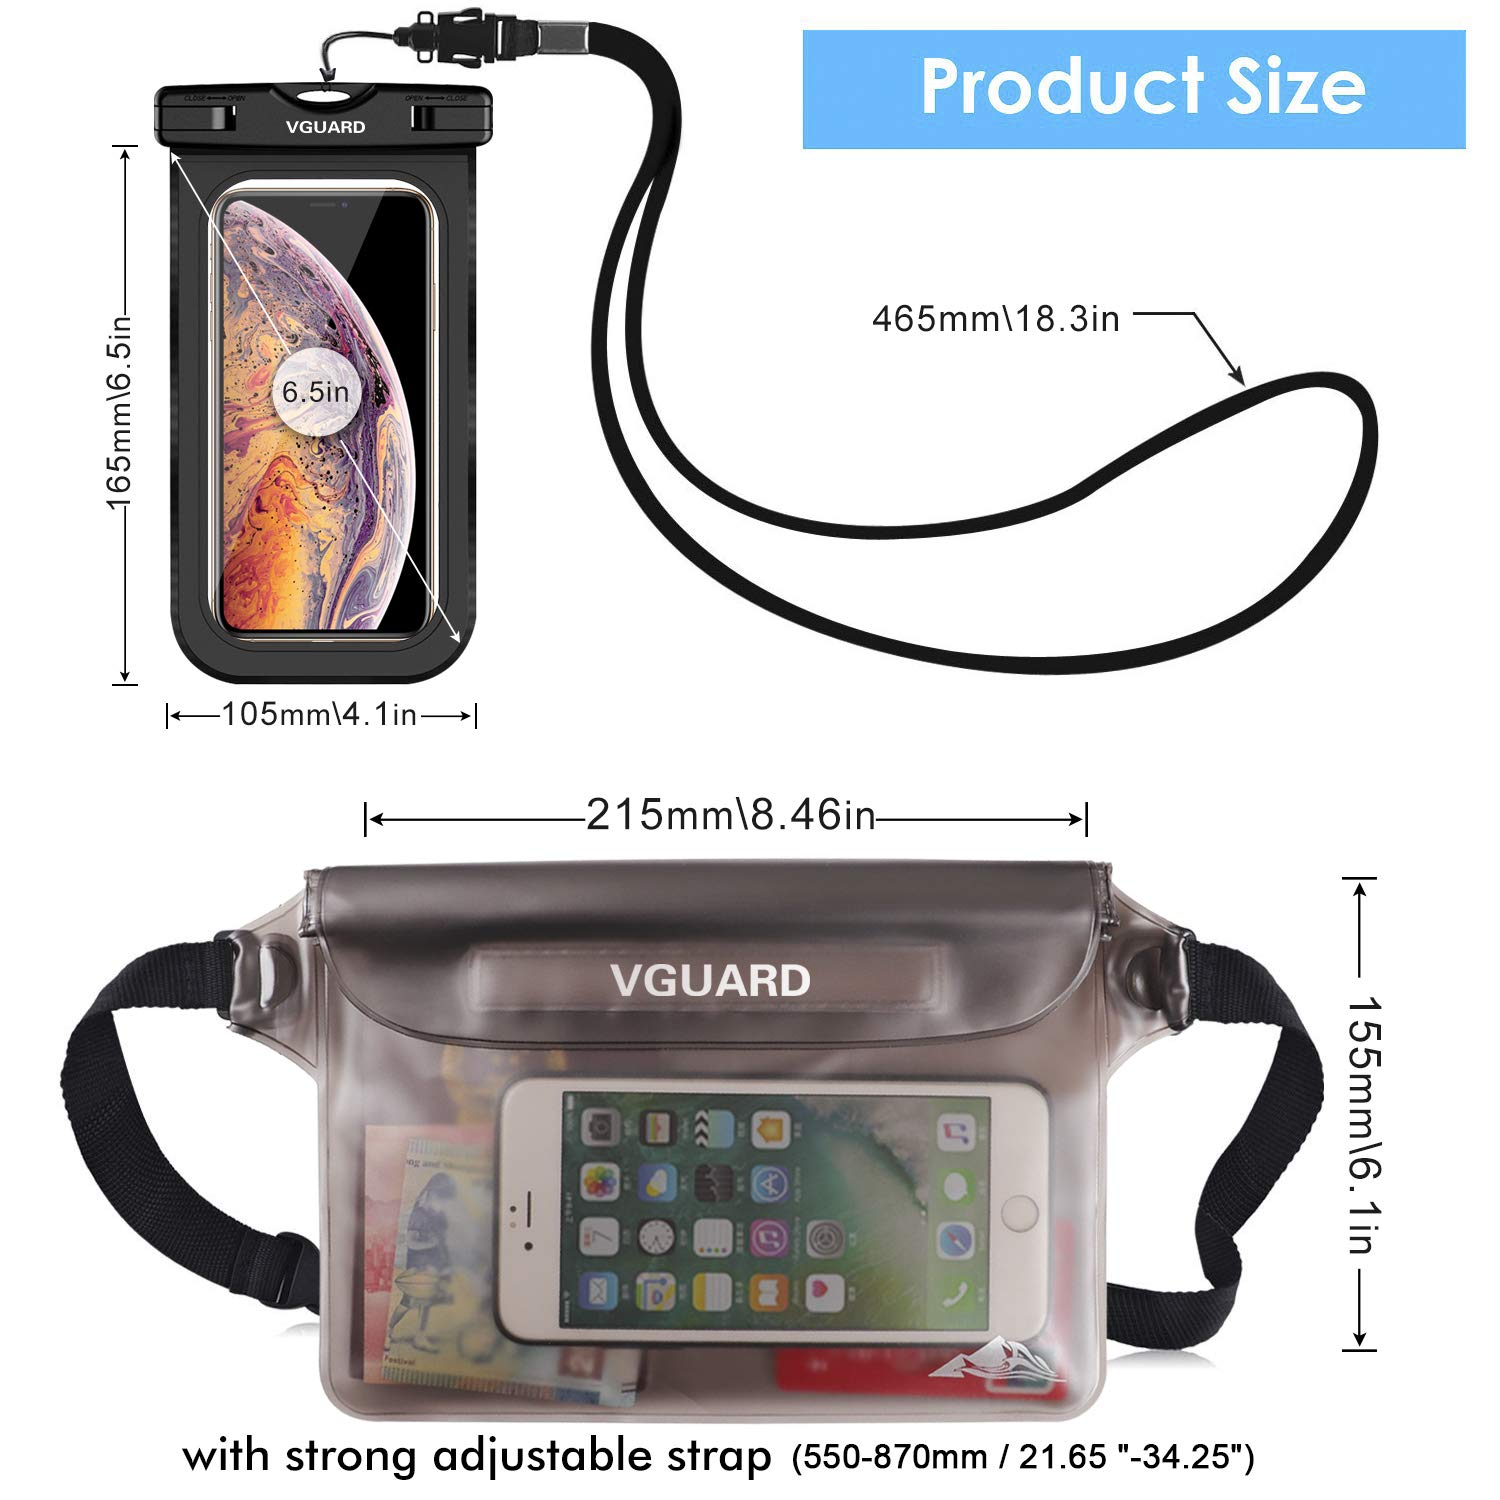 Dust and Dirt. VGUARD Waterproof Pouch Bag Sand Cash,Passport Phone Case Camera Document from Water Snow Waterproof Case Dry Bag for Beach,Swim,Boating,Kayaking,Hiking,Protects Iphone Phone